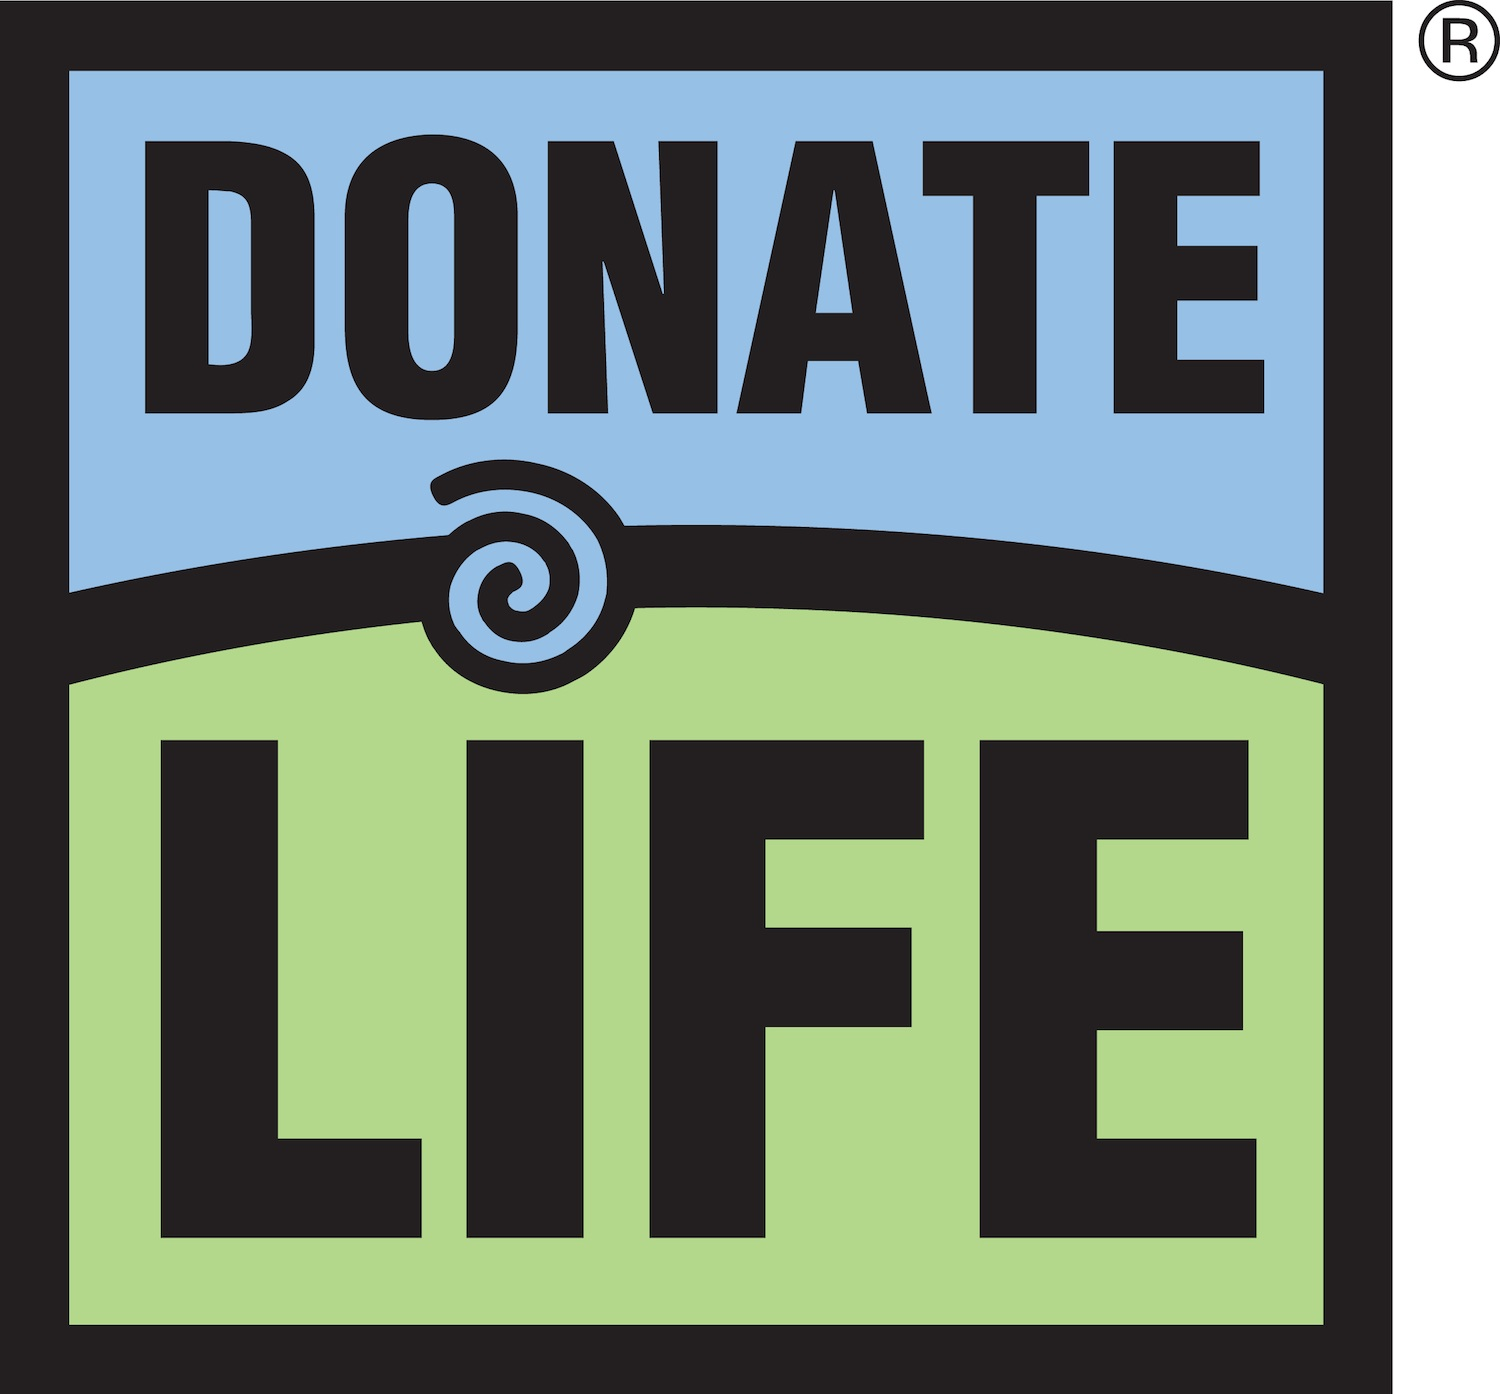 Donate Life℠ - Donate Life America is a 501(c)3 nonprofit organization leading its national partners and Donate Life State Teams to increase the number of donated organs, eyes and tissue available to save and heal lives through transplantation while developing a culture where donation is embraced as a fundamental human responsibility.Donate Life℠ is the national brand for the cause of donation; motivates the public to register as organ, eye and tissue donors; provides education about living donation; manages the National Donate Life Registry at RegisterMe.org. Over the past 25 years, Donate Life America and the Donate Life Community have registered nearly 138 Million organ, eye and tissue donors in the United States – more than 56% of the adult population. Learn more at Donate Life.